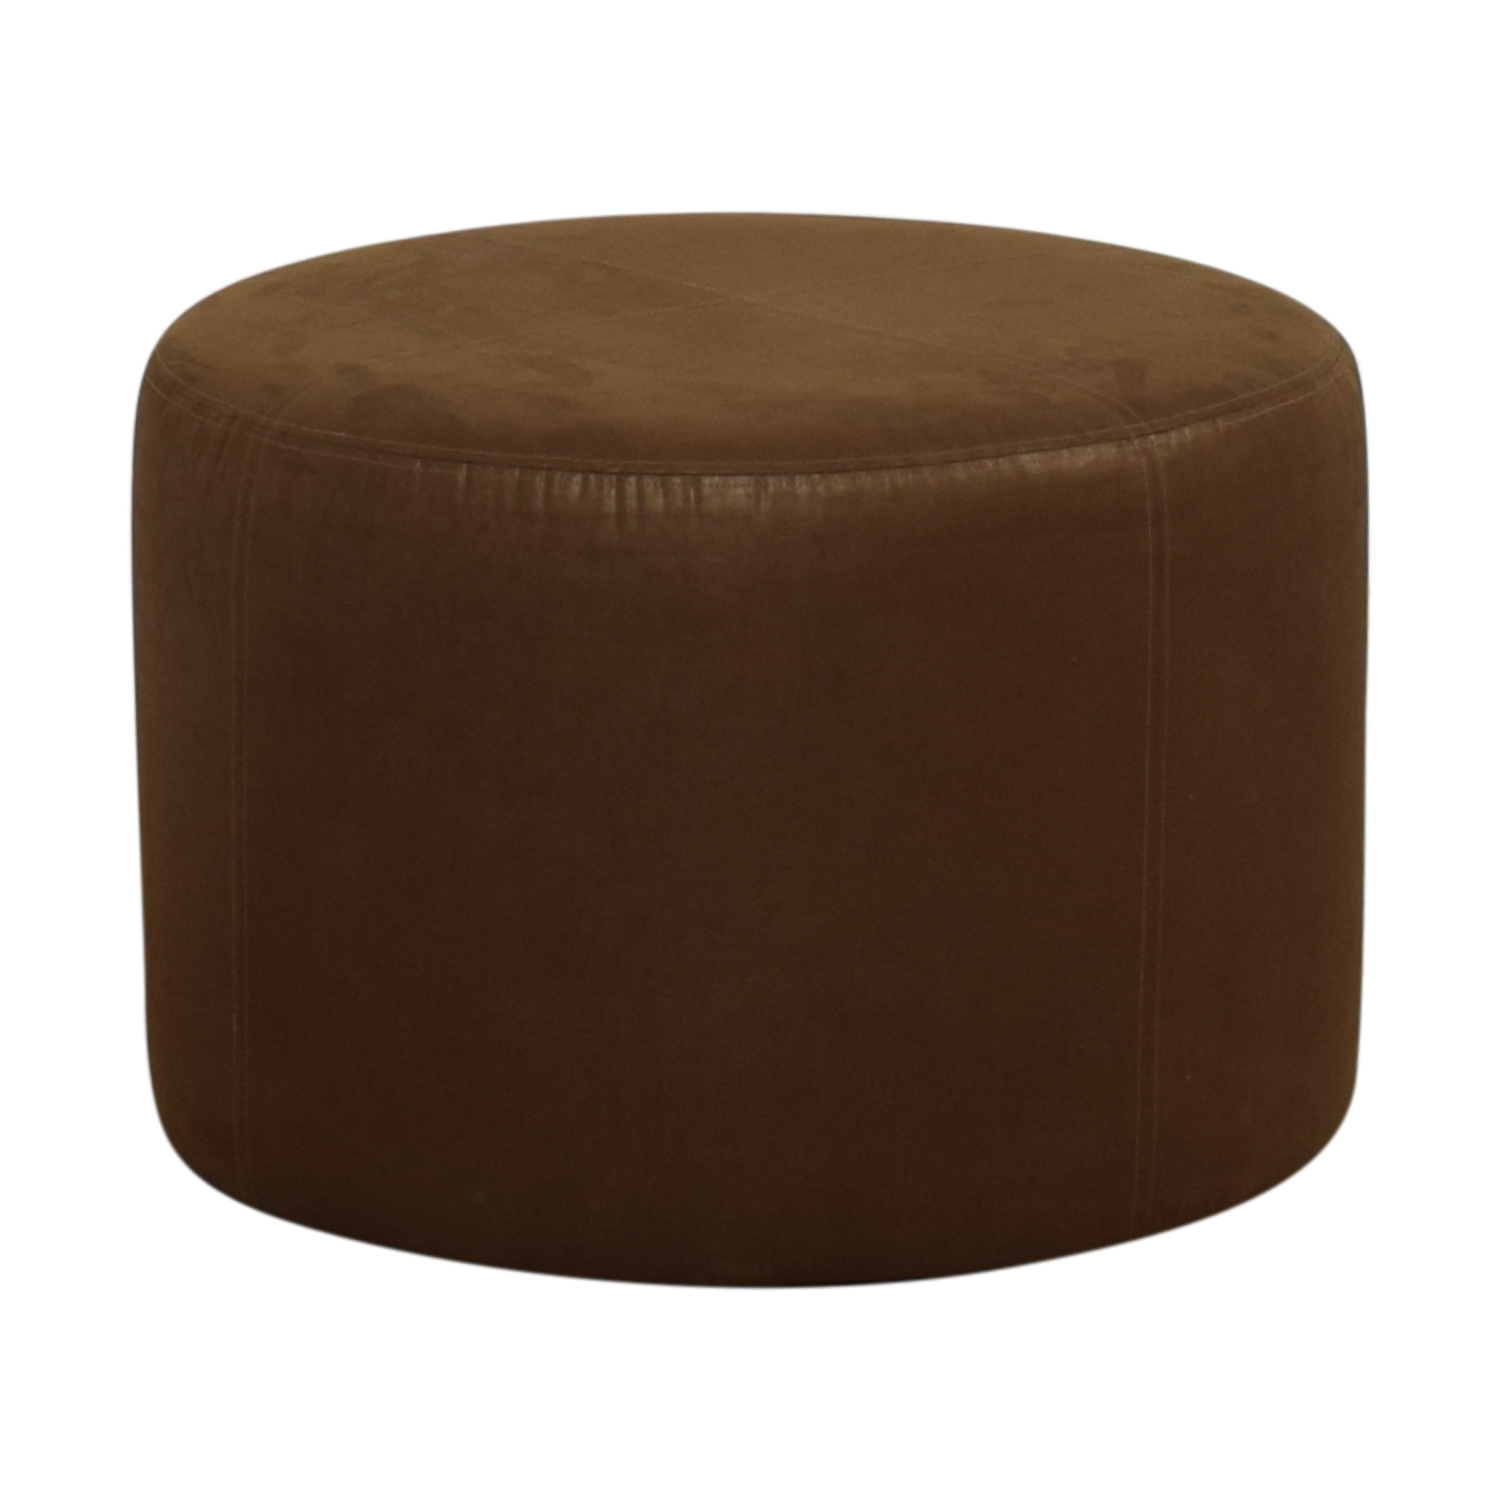 Round Rustic Leather Ottoman Nyc